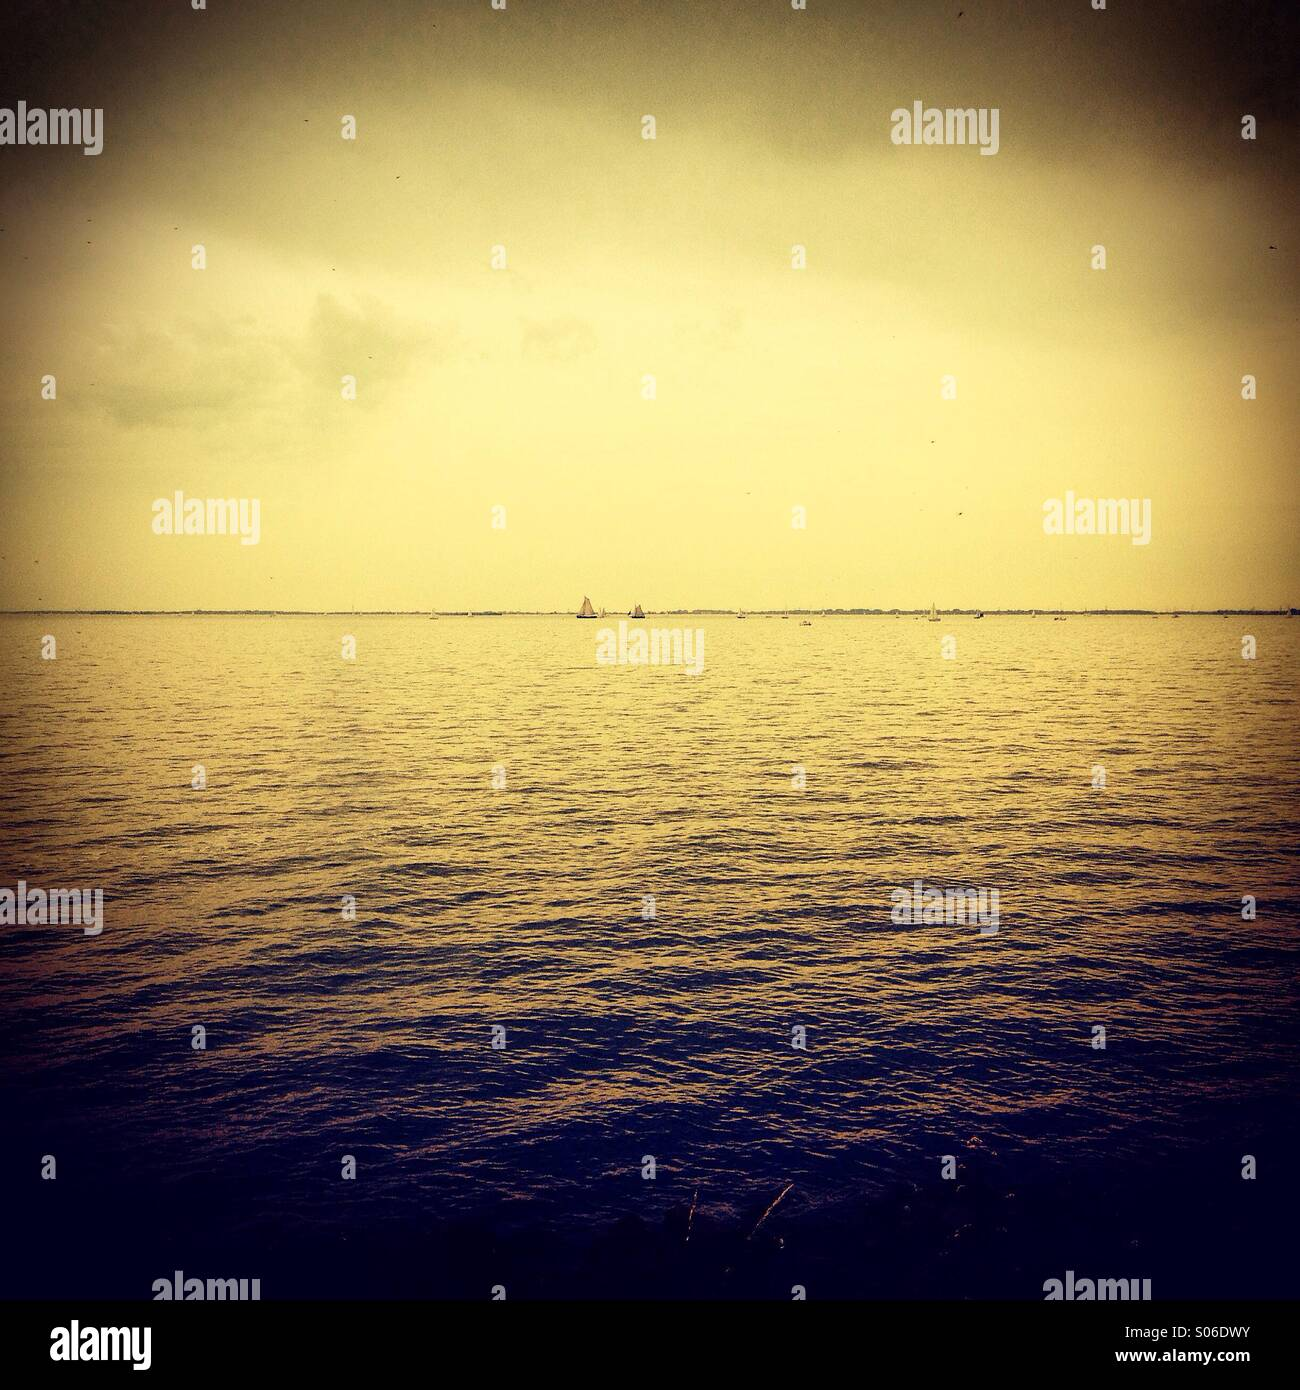 Sailing boats on the Markermeer, Netherlands - Stock Image